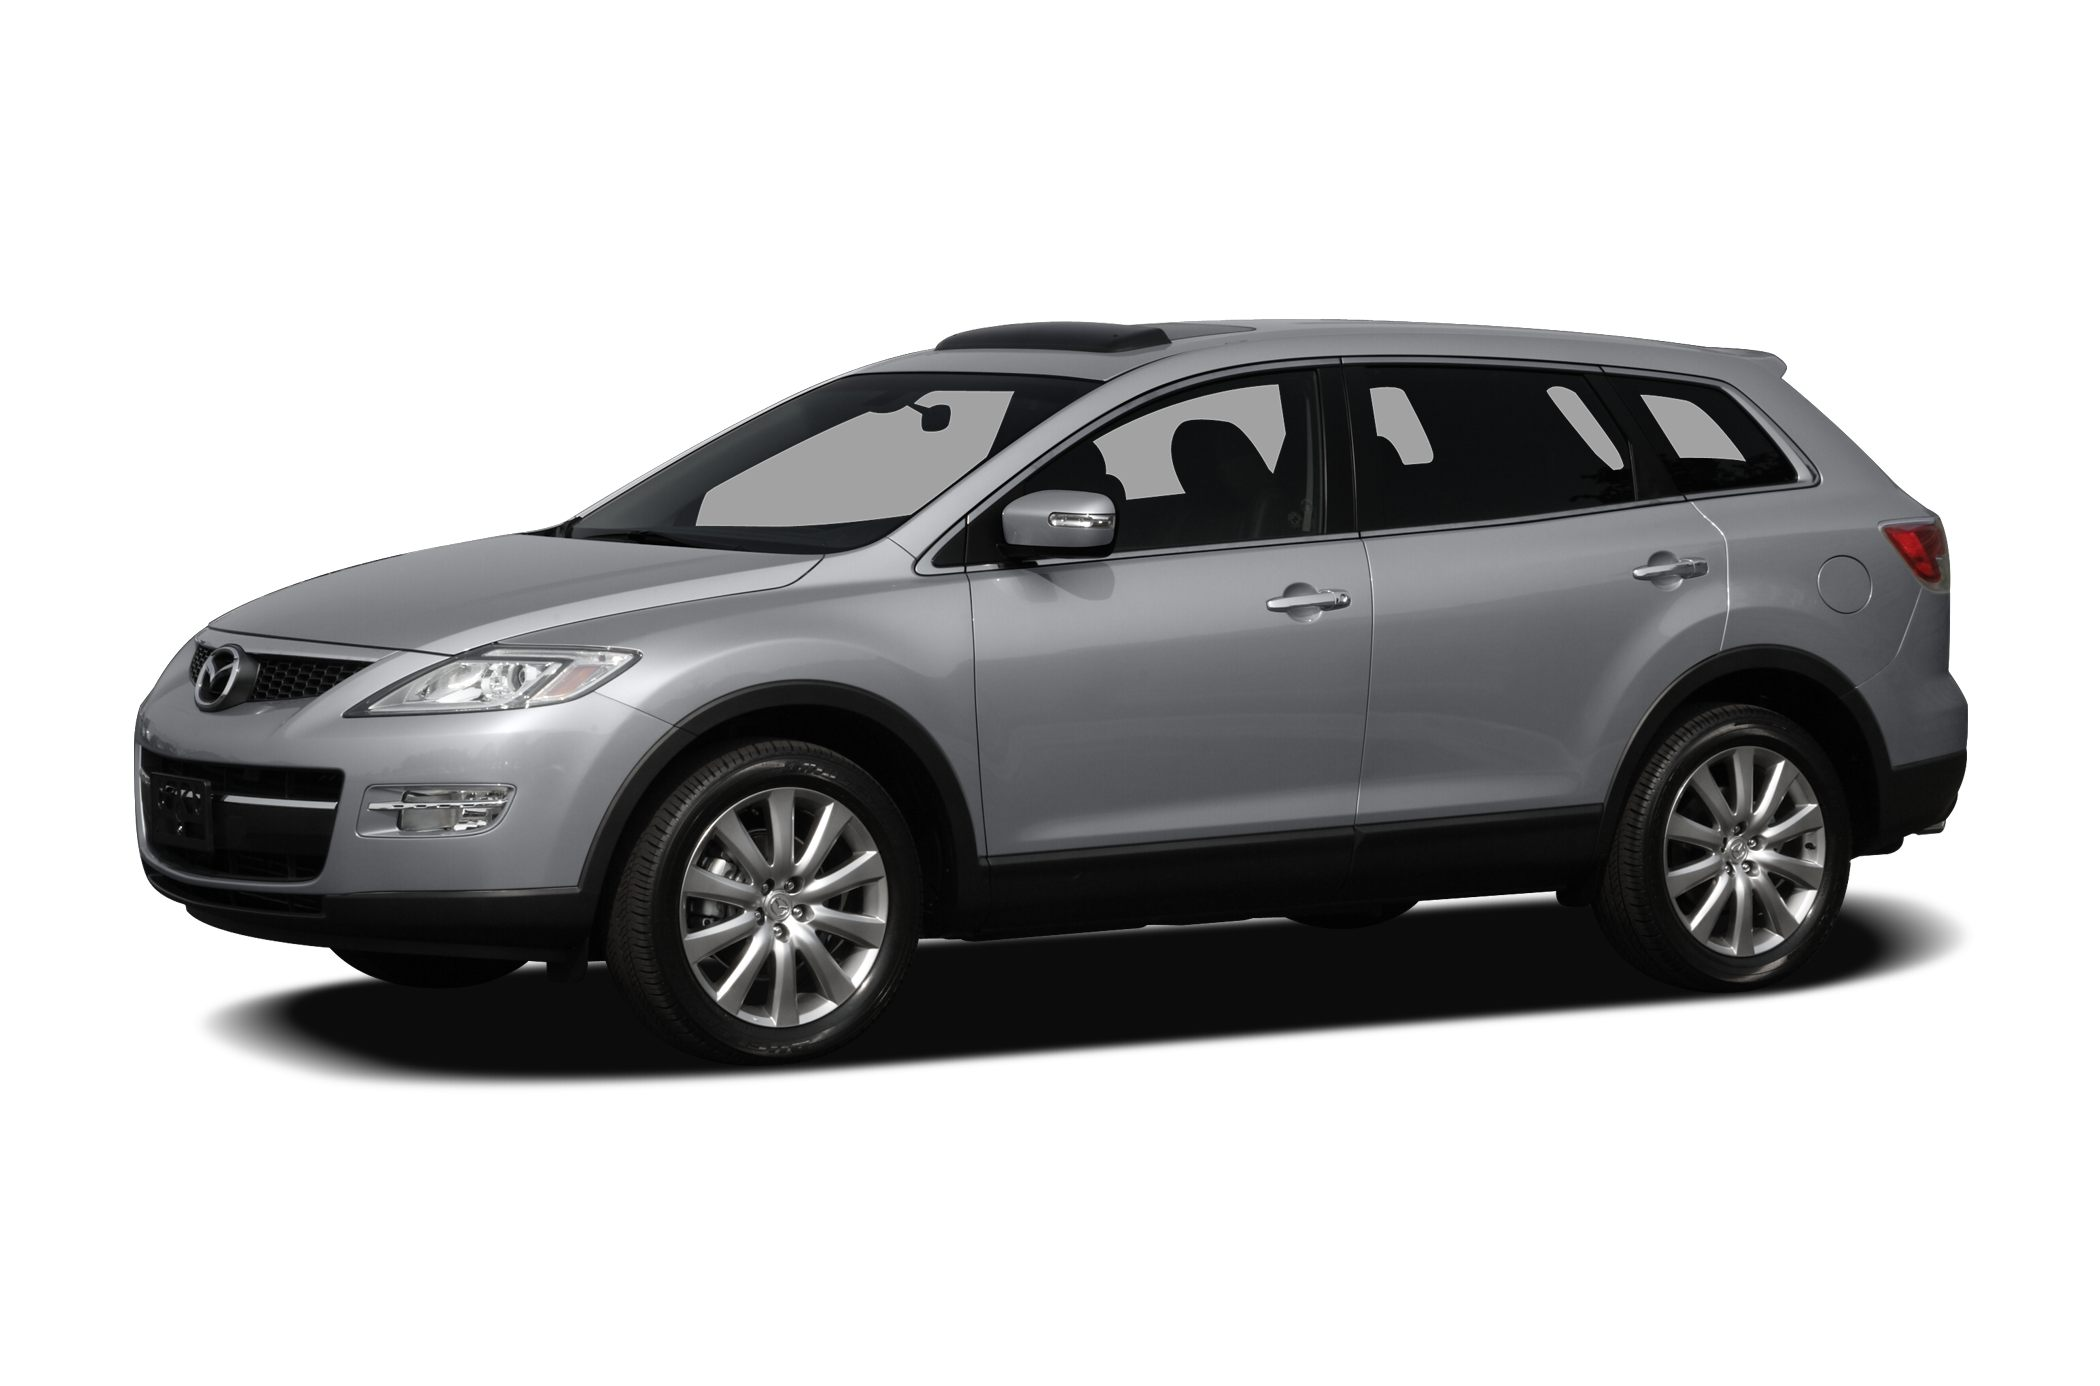 2008 Mazda CX-9 Grand Touring SUV for sale in Houston for $10,995 with 130,498 miles.